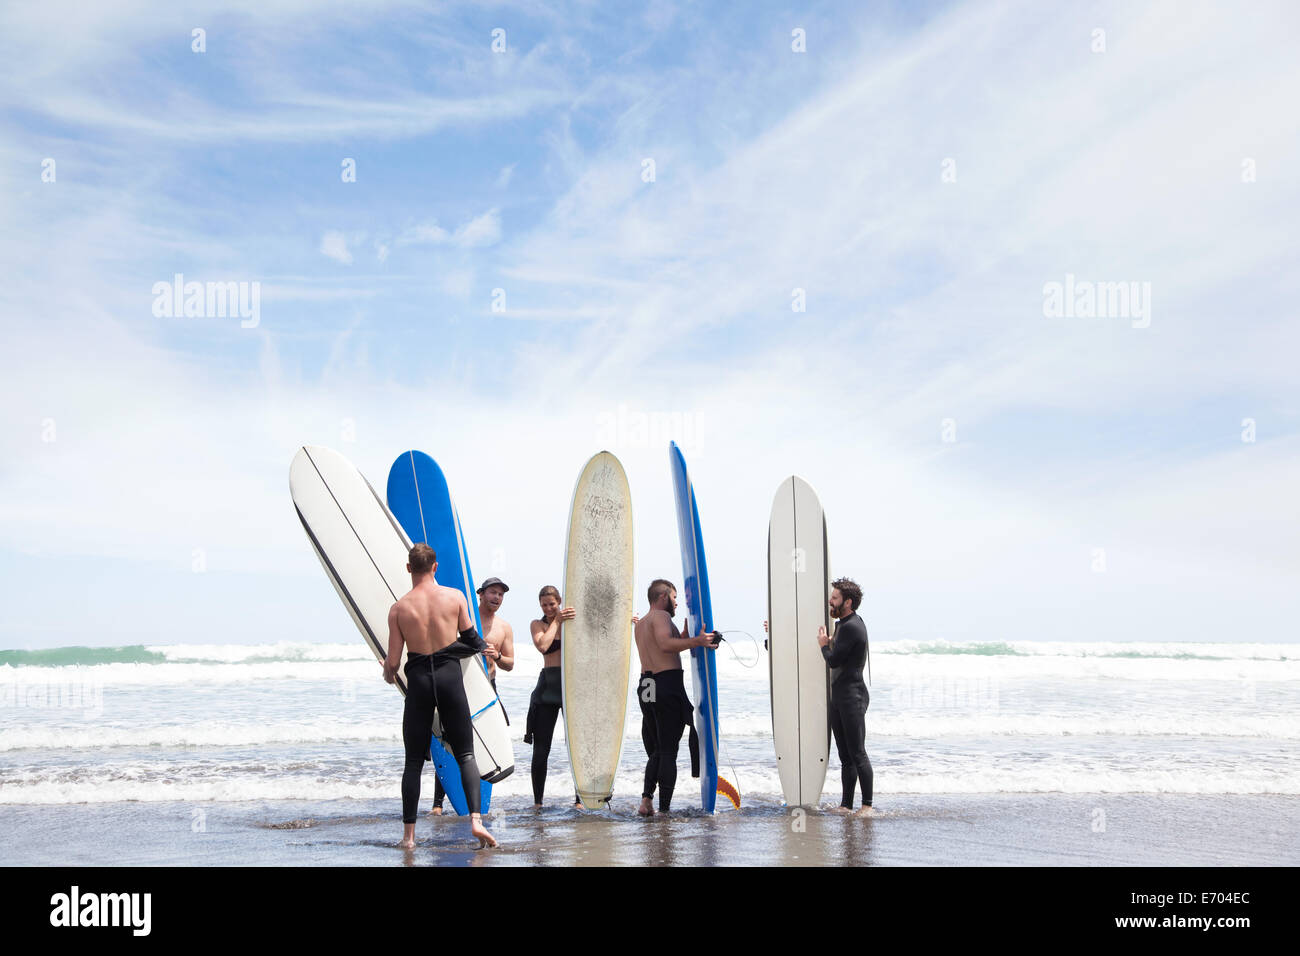 Group of male and female surfer friends standing on beach with surf boards - Stock Image